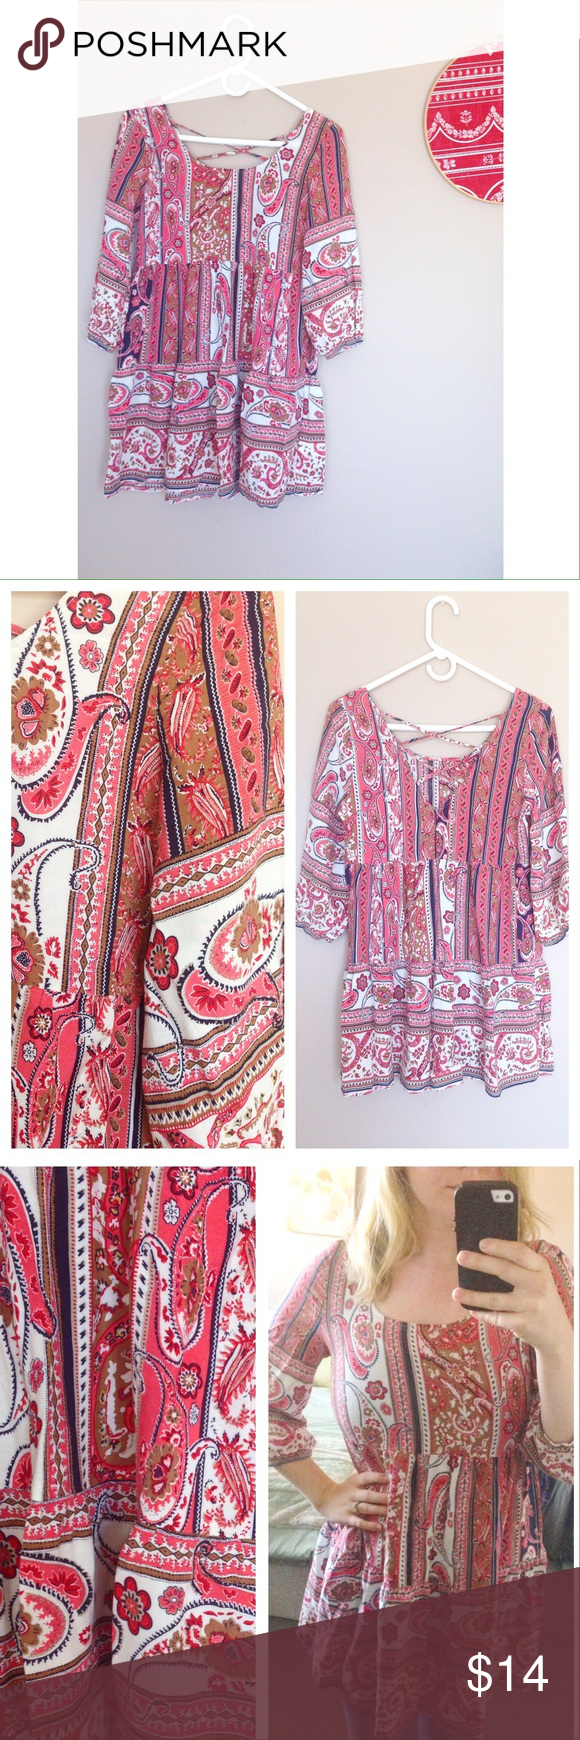 "Beautiful ""Umgee"" Boho tunic top/mini dress Lightweight and comfy! Criss-crosses in back. Size small, can fit medium as well (bust 34"", length 31"") excellent condition. umgee Tops Tunics"